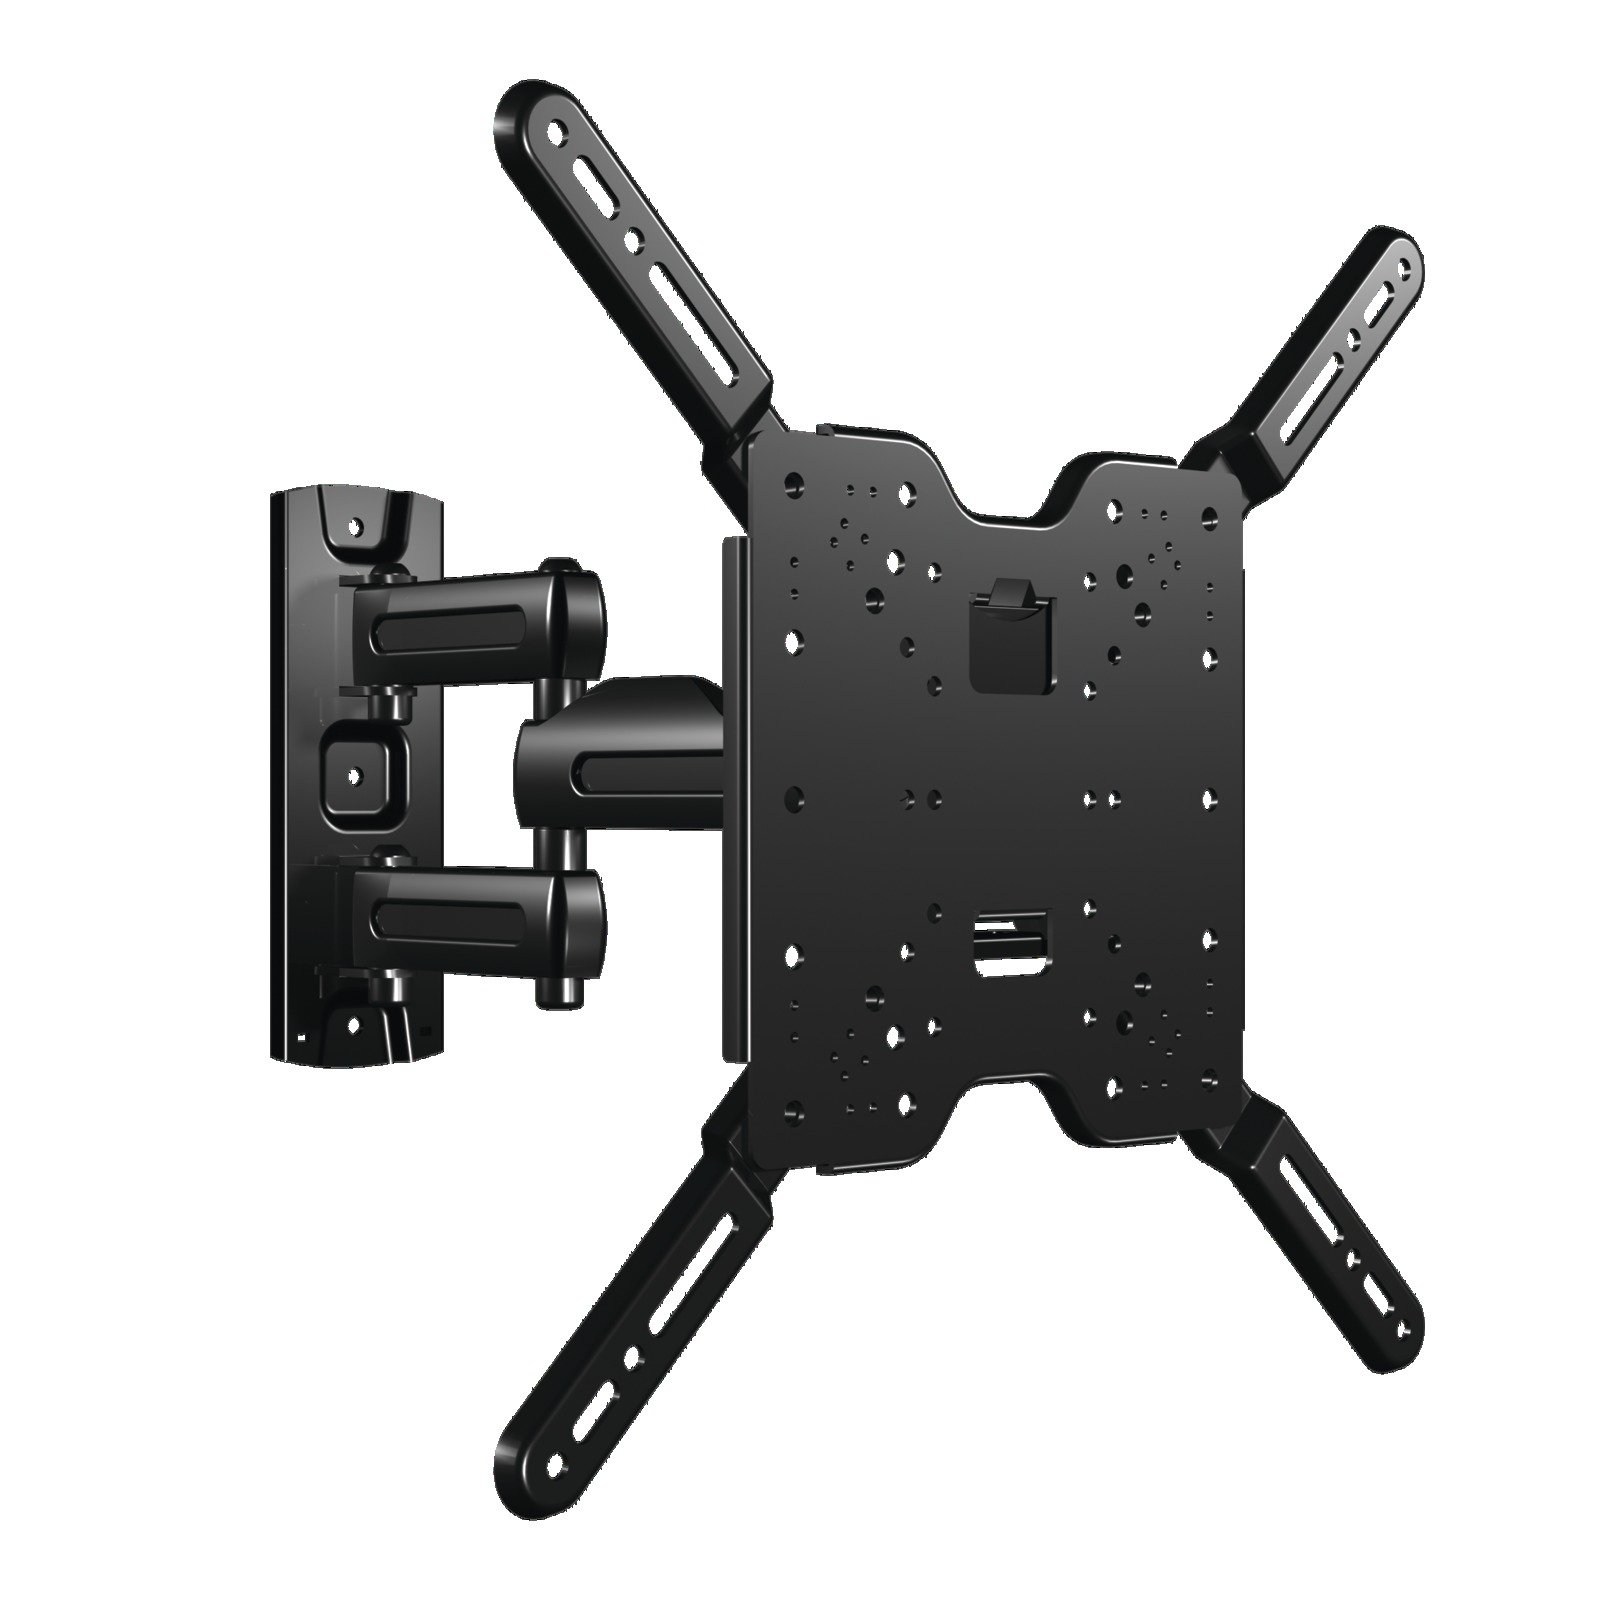 SANUS Vuepoint Full Motion TV Wall Mount Bracket for 37-80'' TVs - Includes 10' HDMI, Surge Protector, Cable Ties and More - FLF215KIT